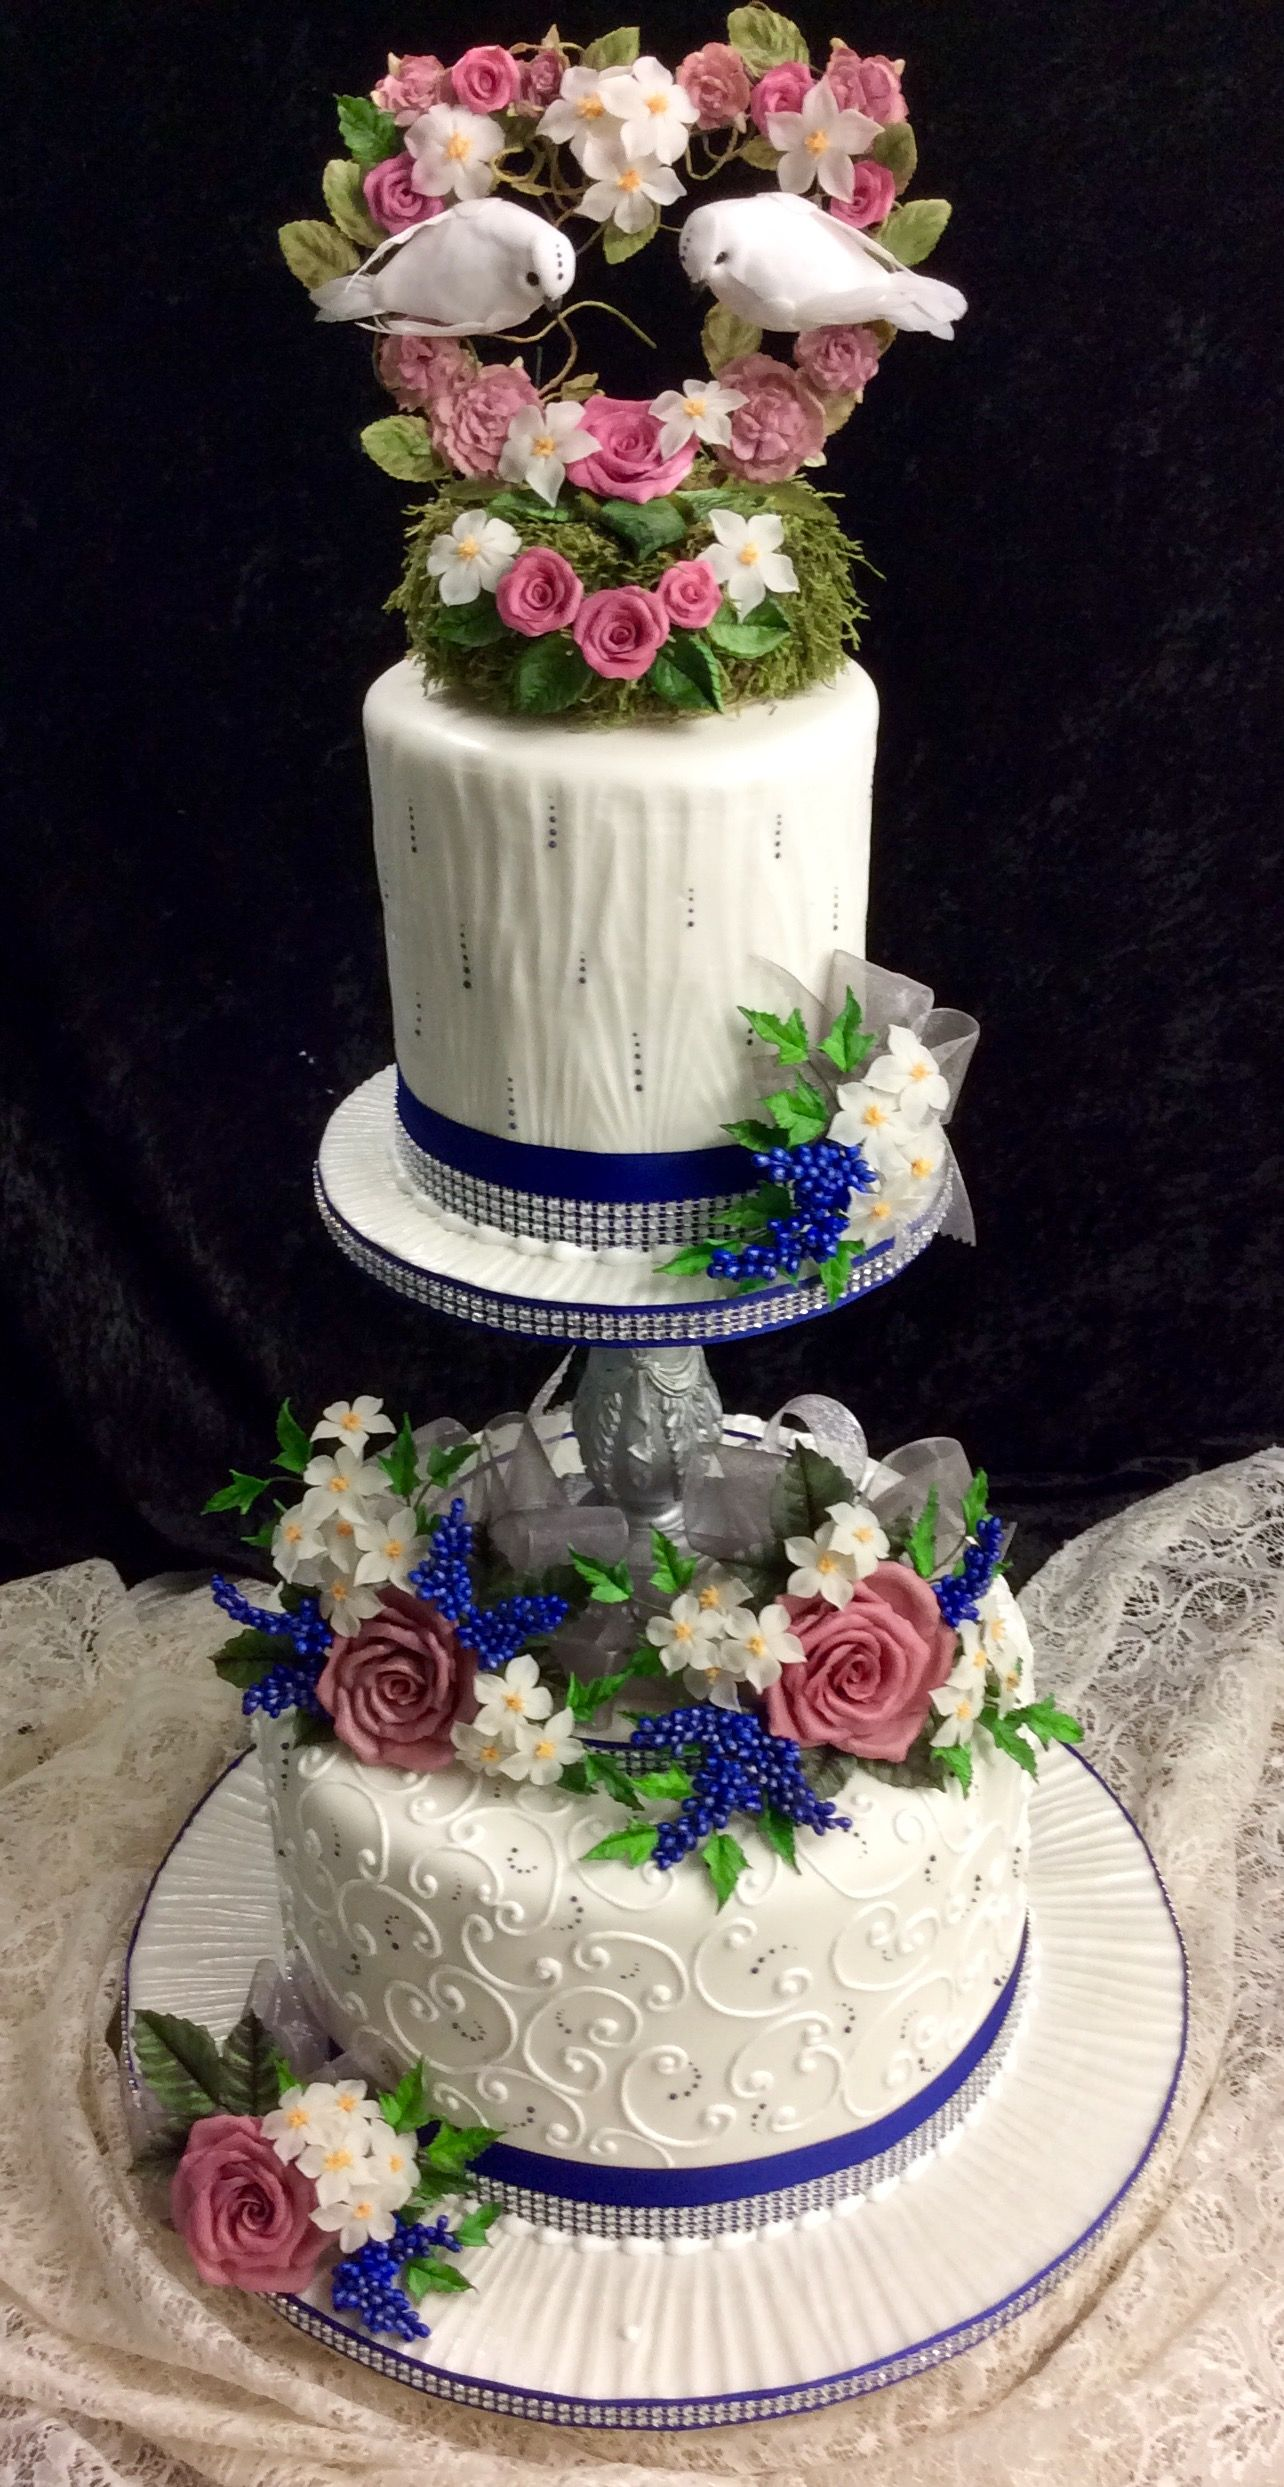 Pin by Jacqueline P on Wedding Cake in 2019 Cake